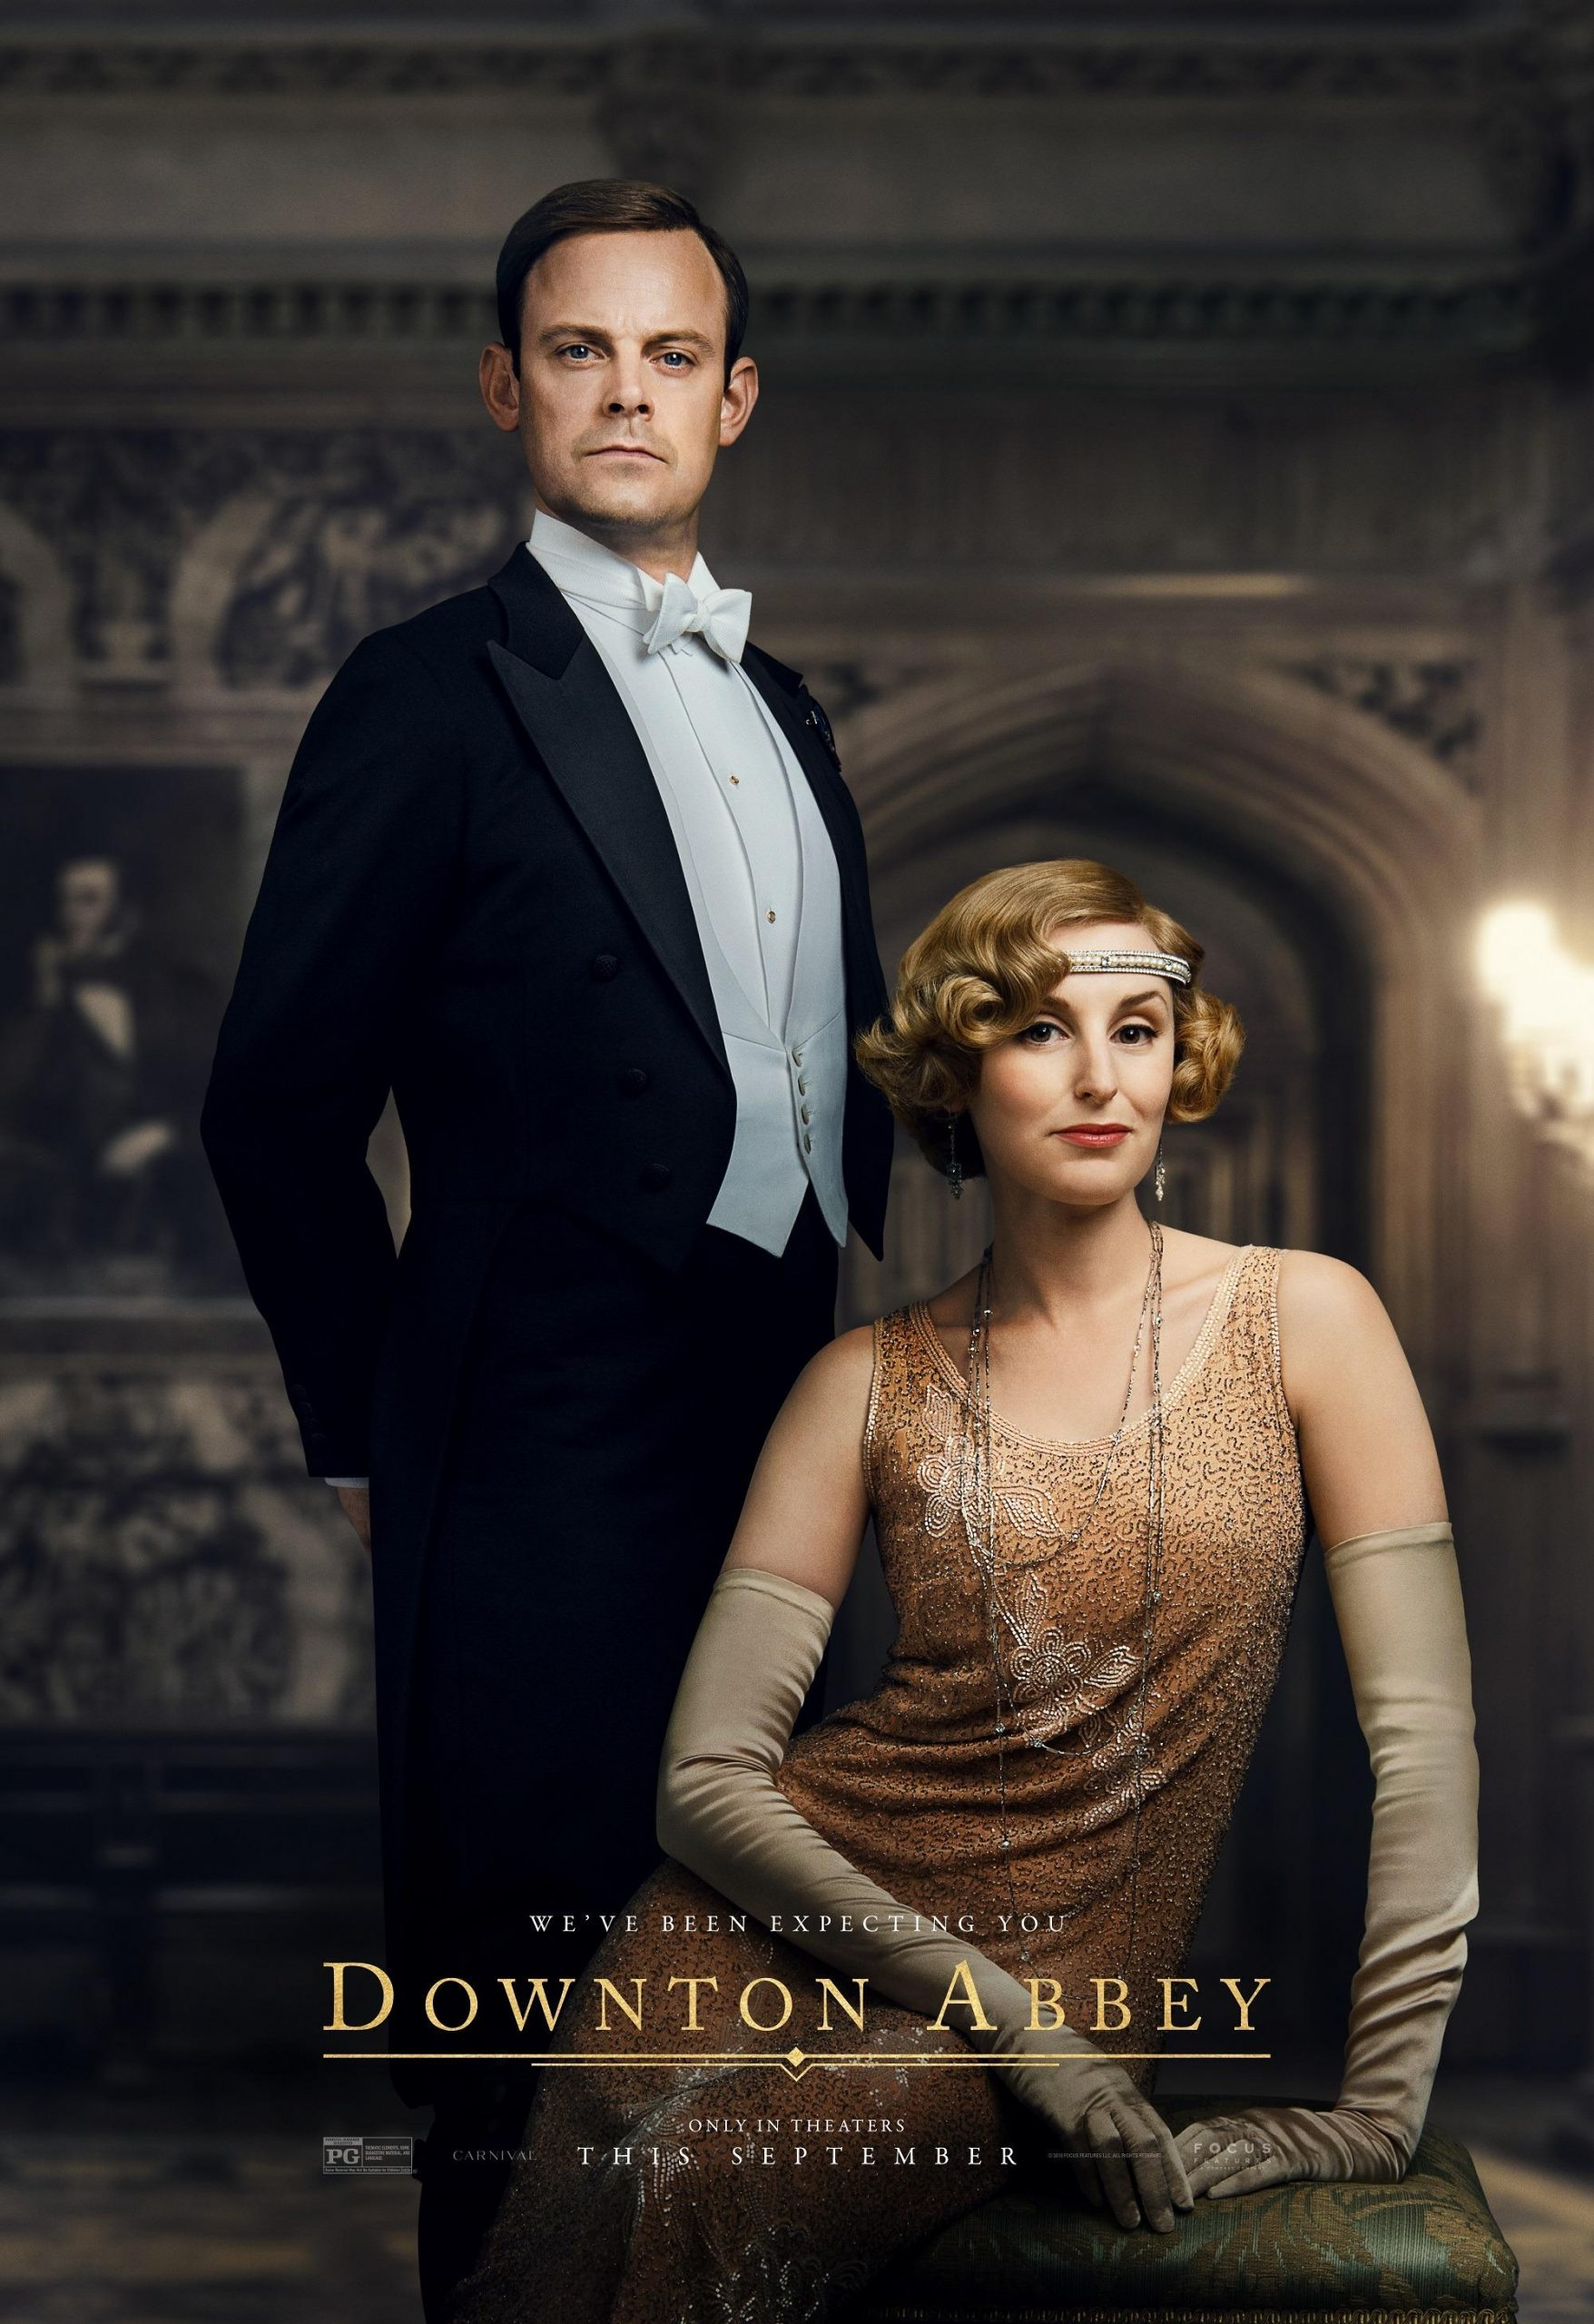 Herbert Pelham and Lady Edith Crawley Downton Abbey The Movie Character Posters